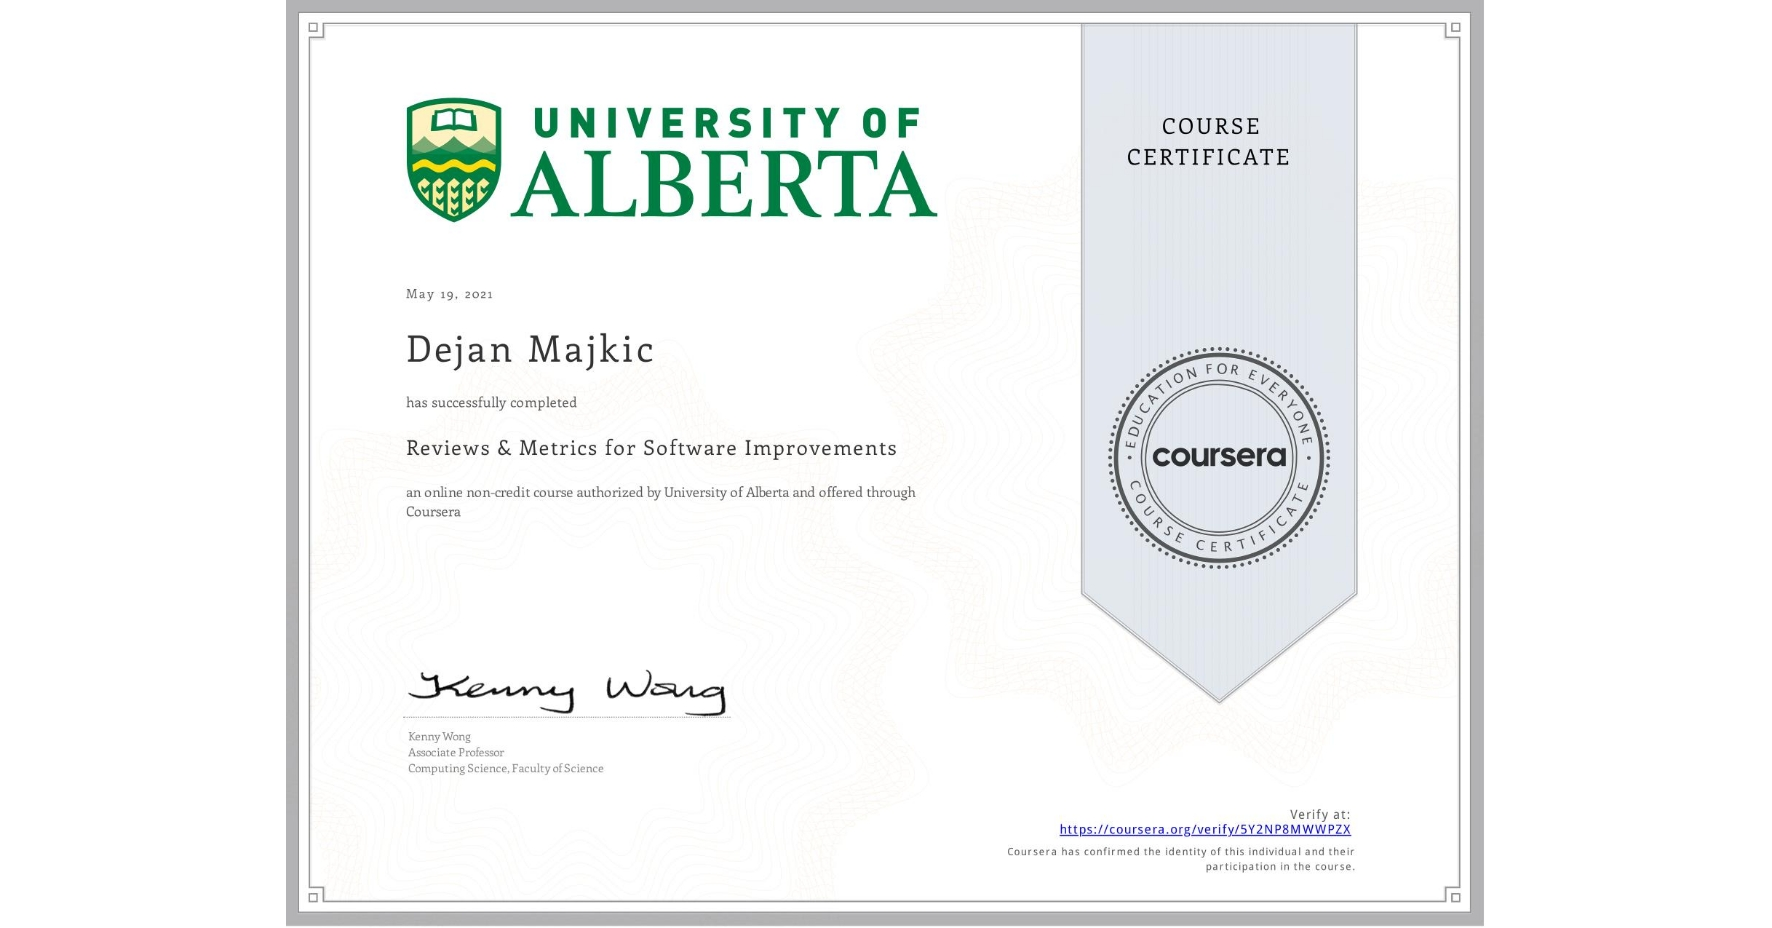 View certificate for Dejan Majkic, Reviews & Metrics for Software Improvements, an online non-credit course authorized by University of Alberta and offered through Coursera